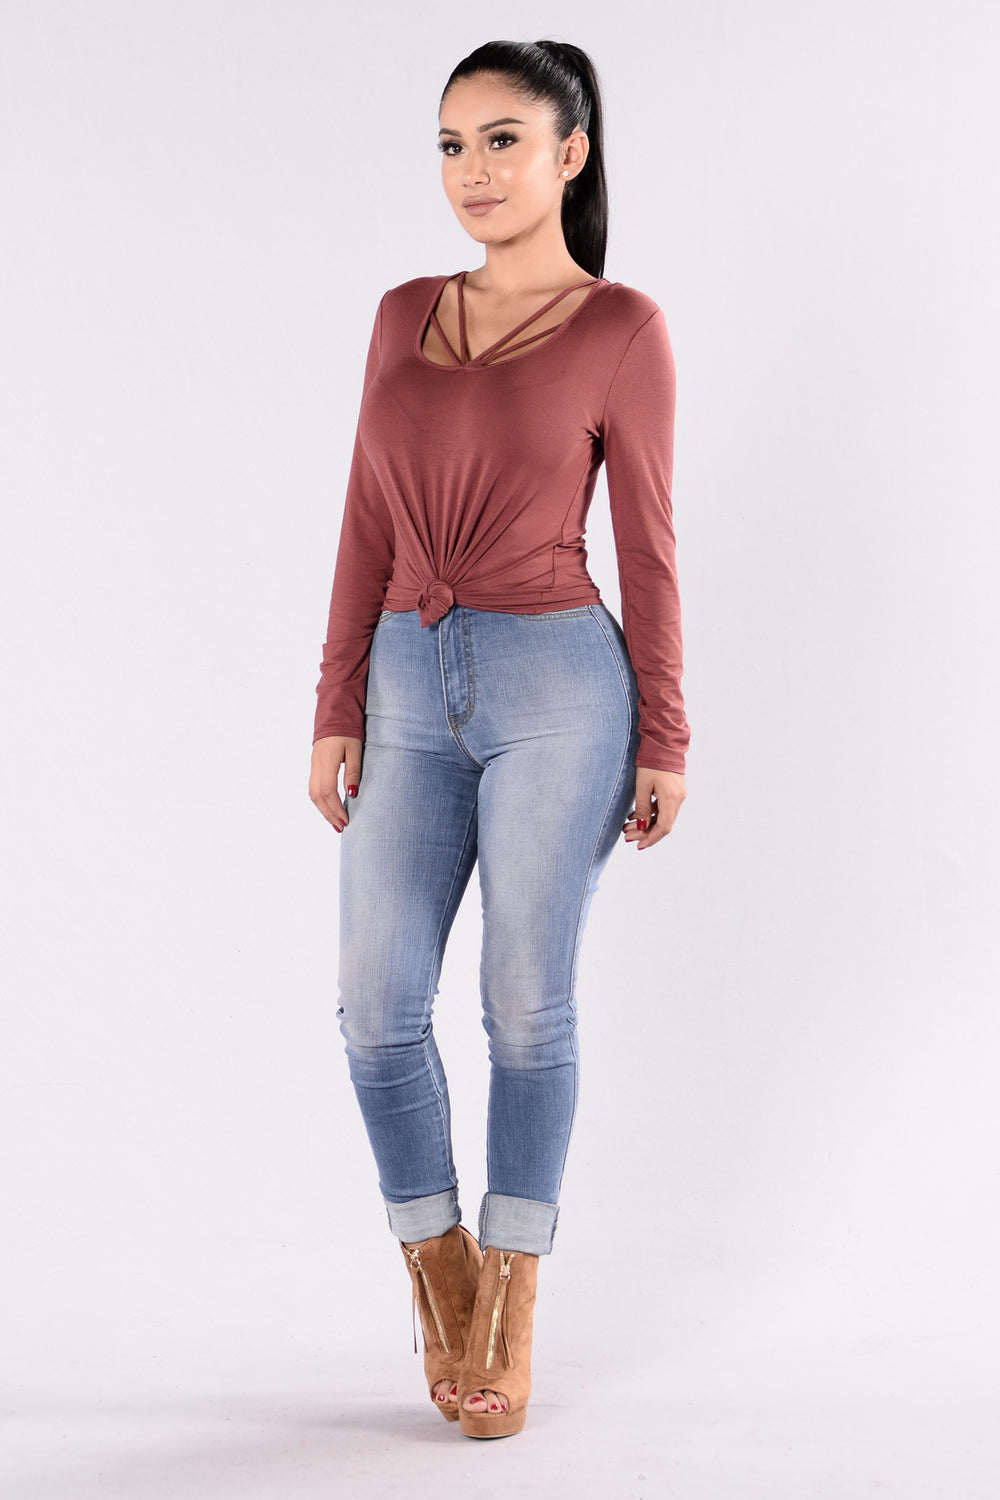 You May Knot Top - Marsala